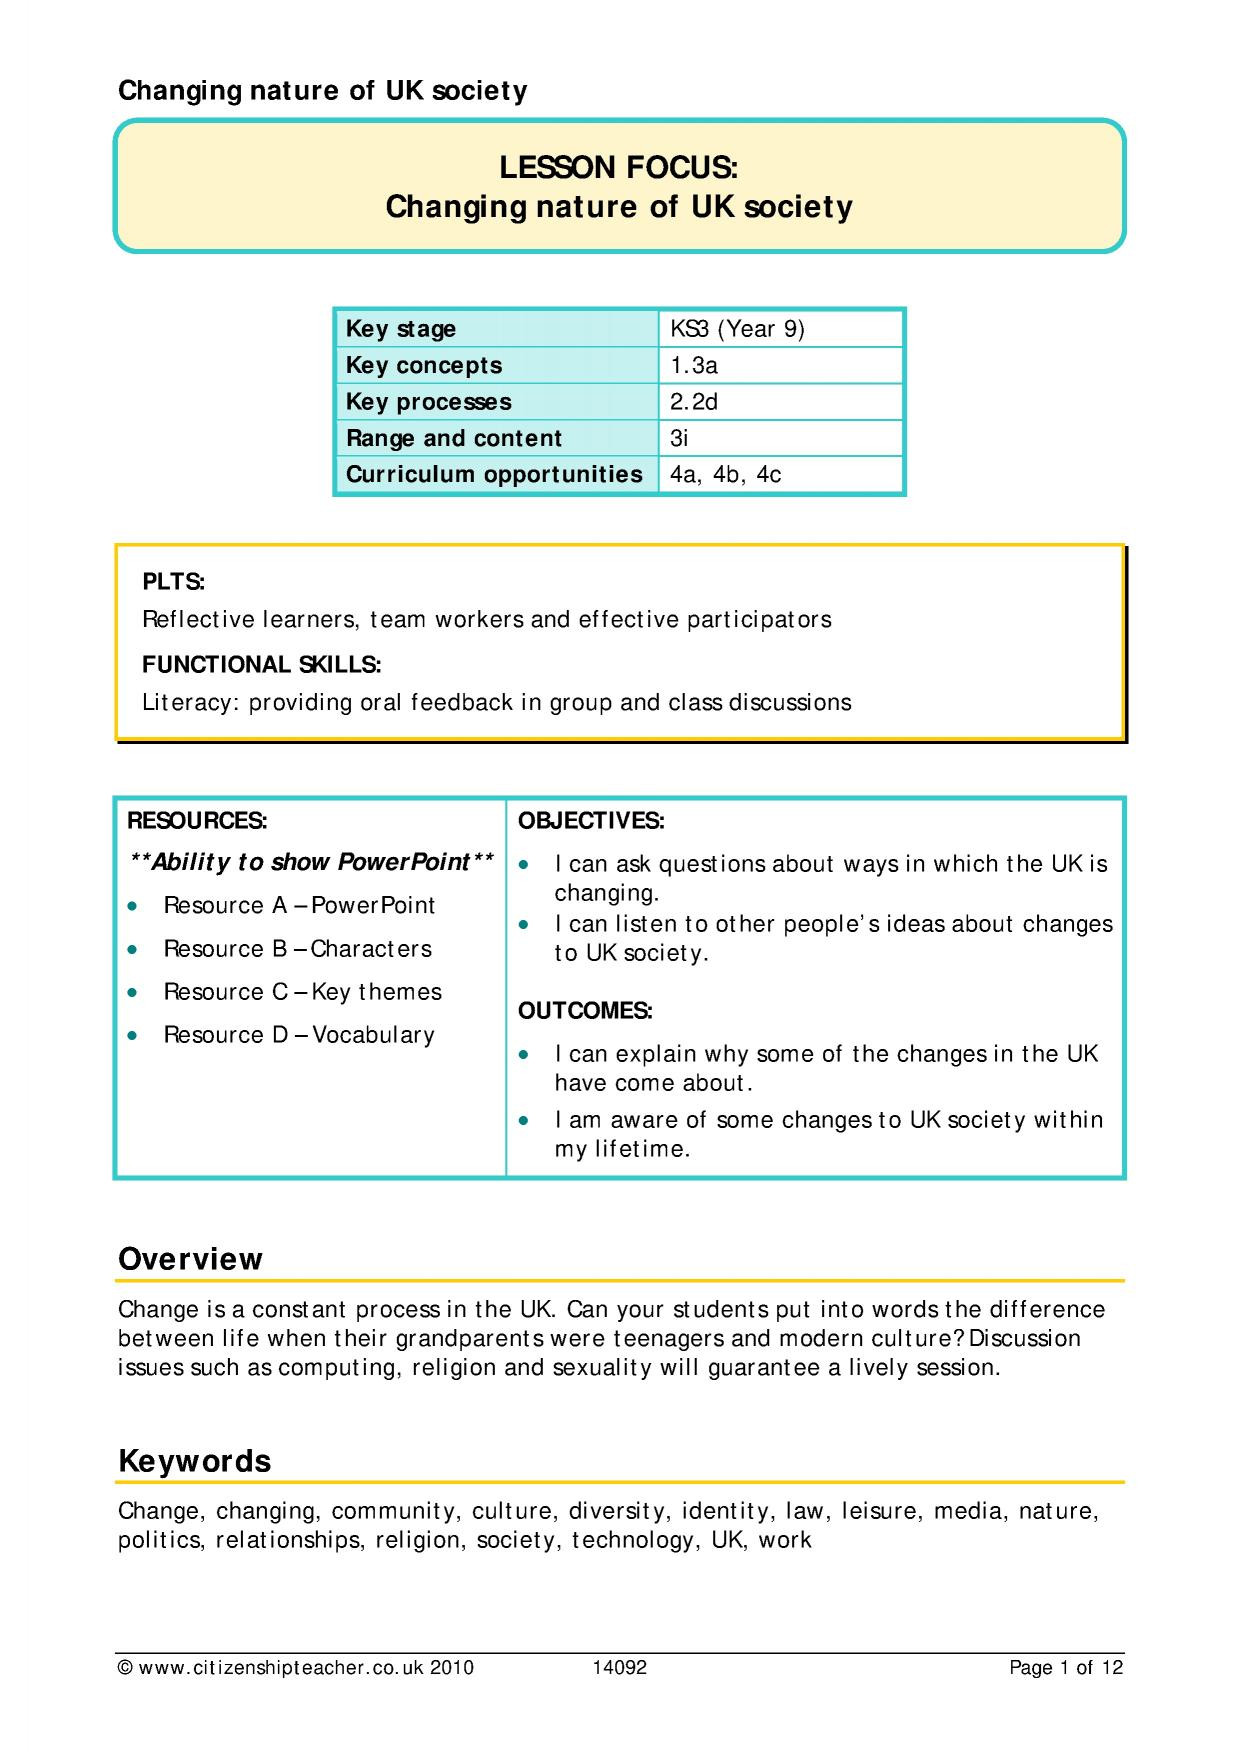 Resource thumbnail